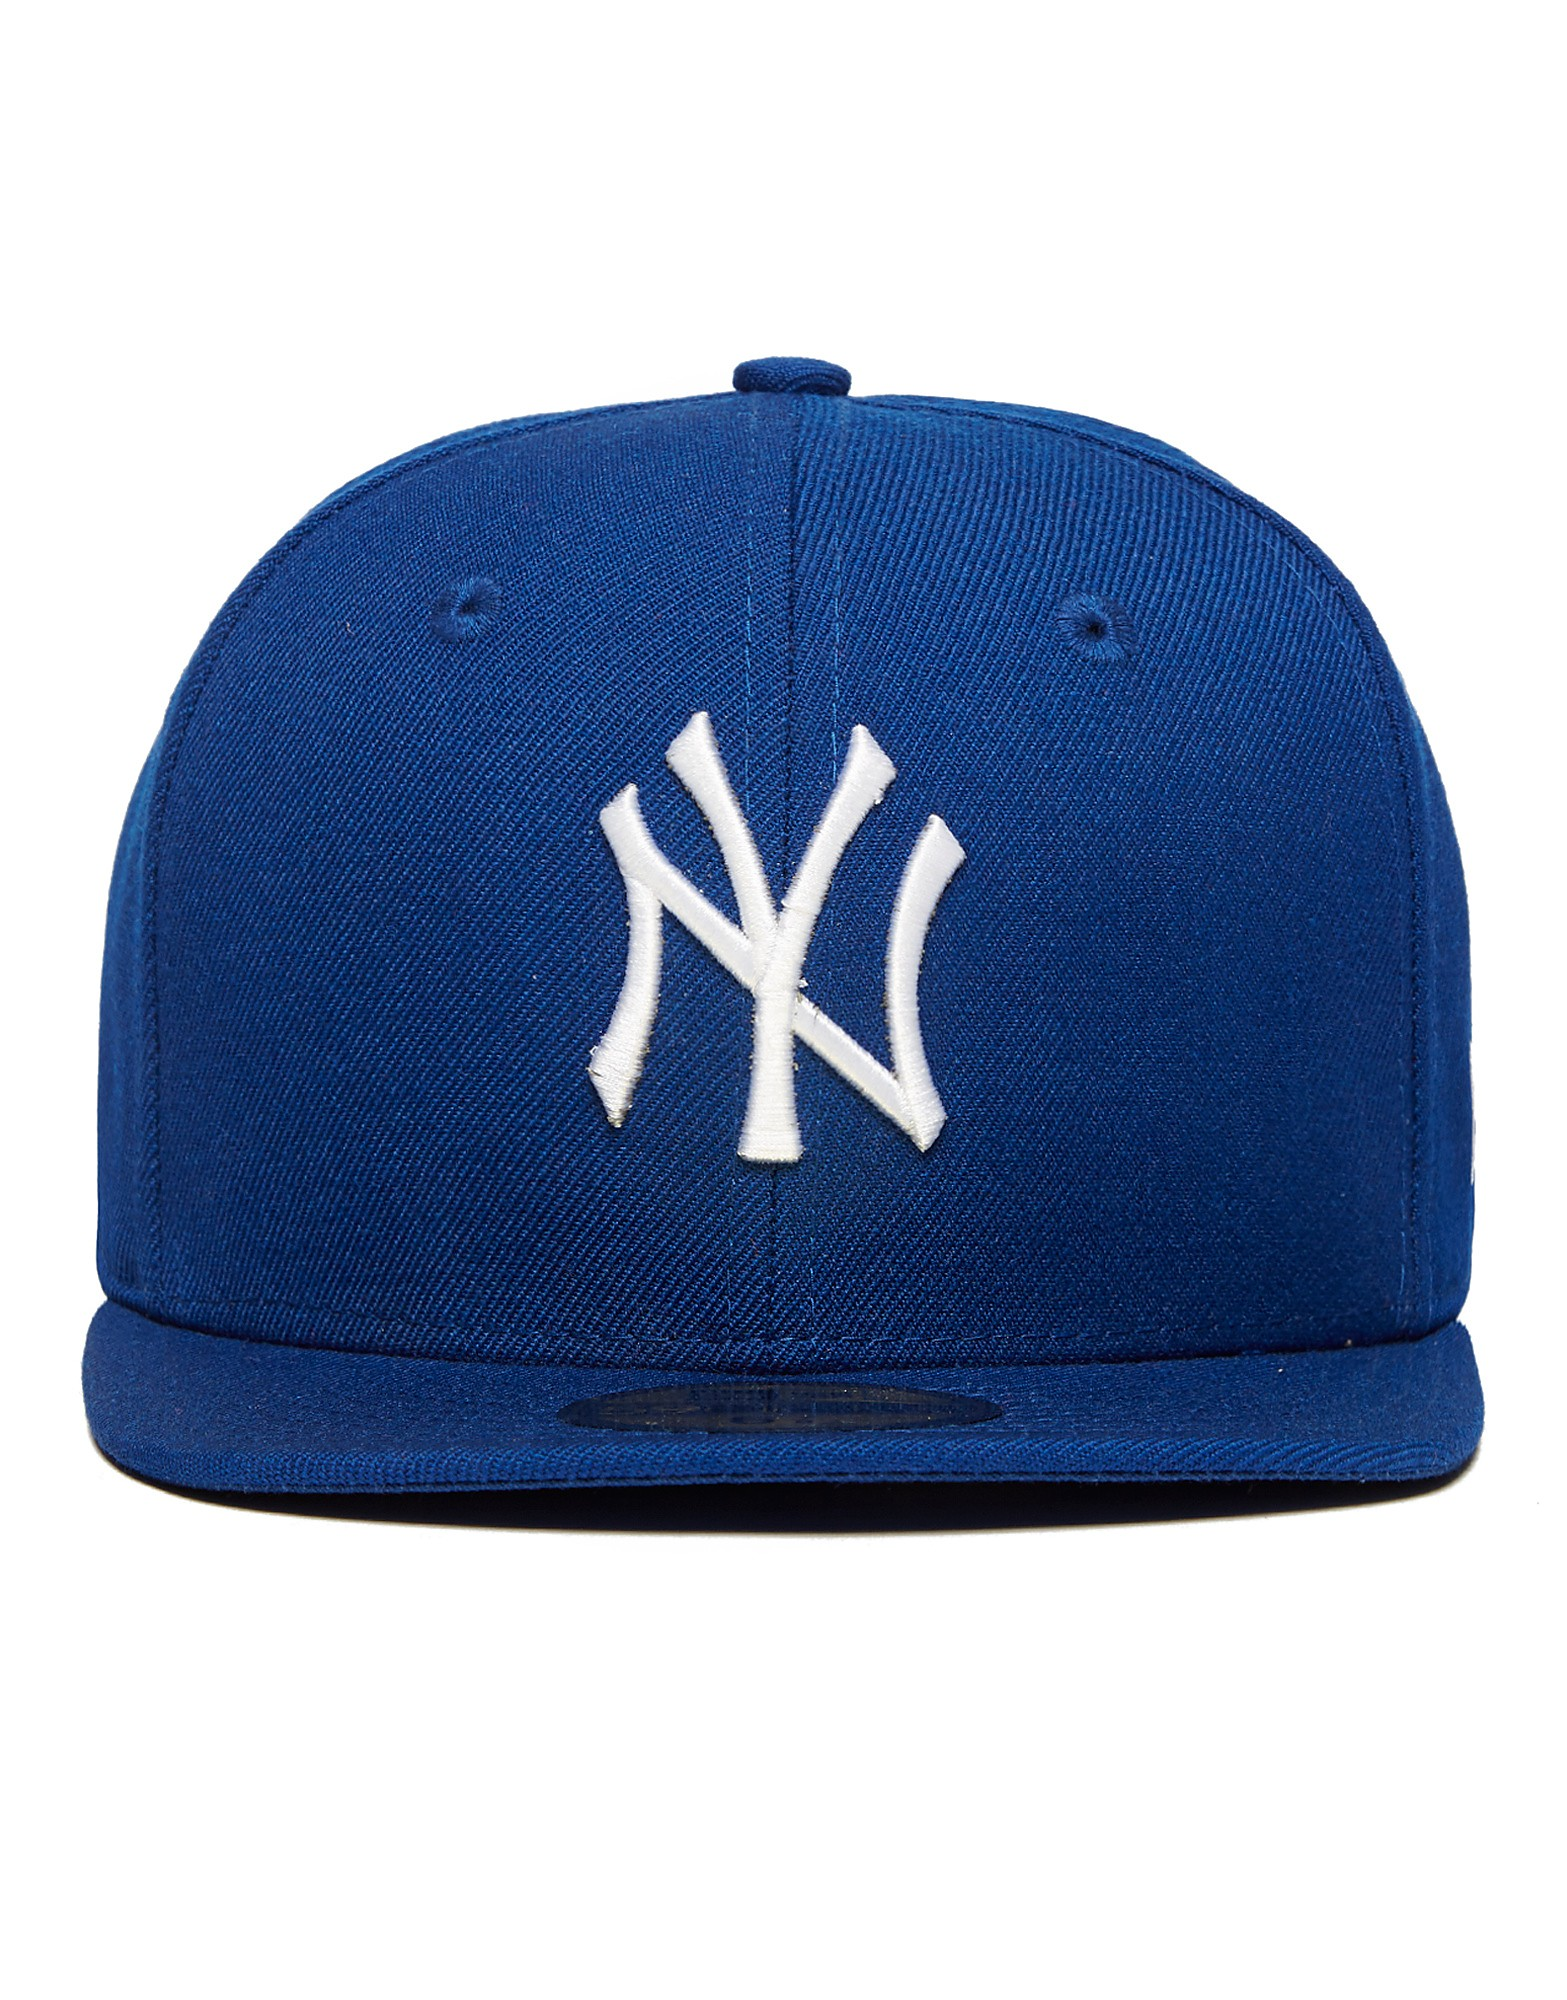 New Era MLB New York Yankees 59FIFTY – tilpasset kasket